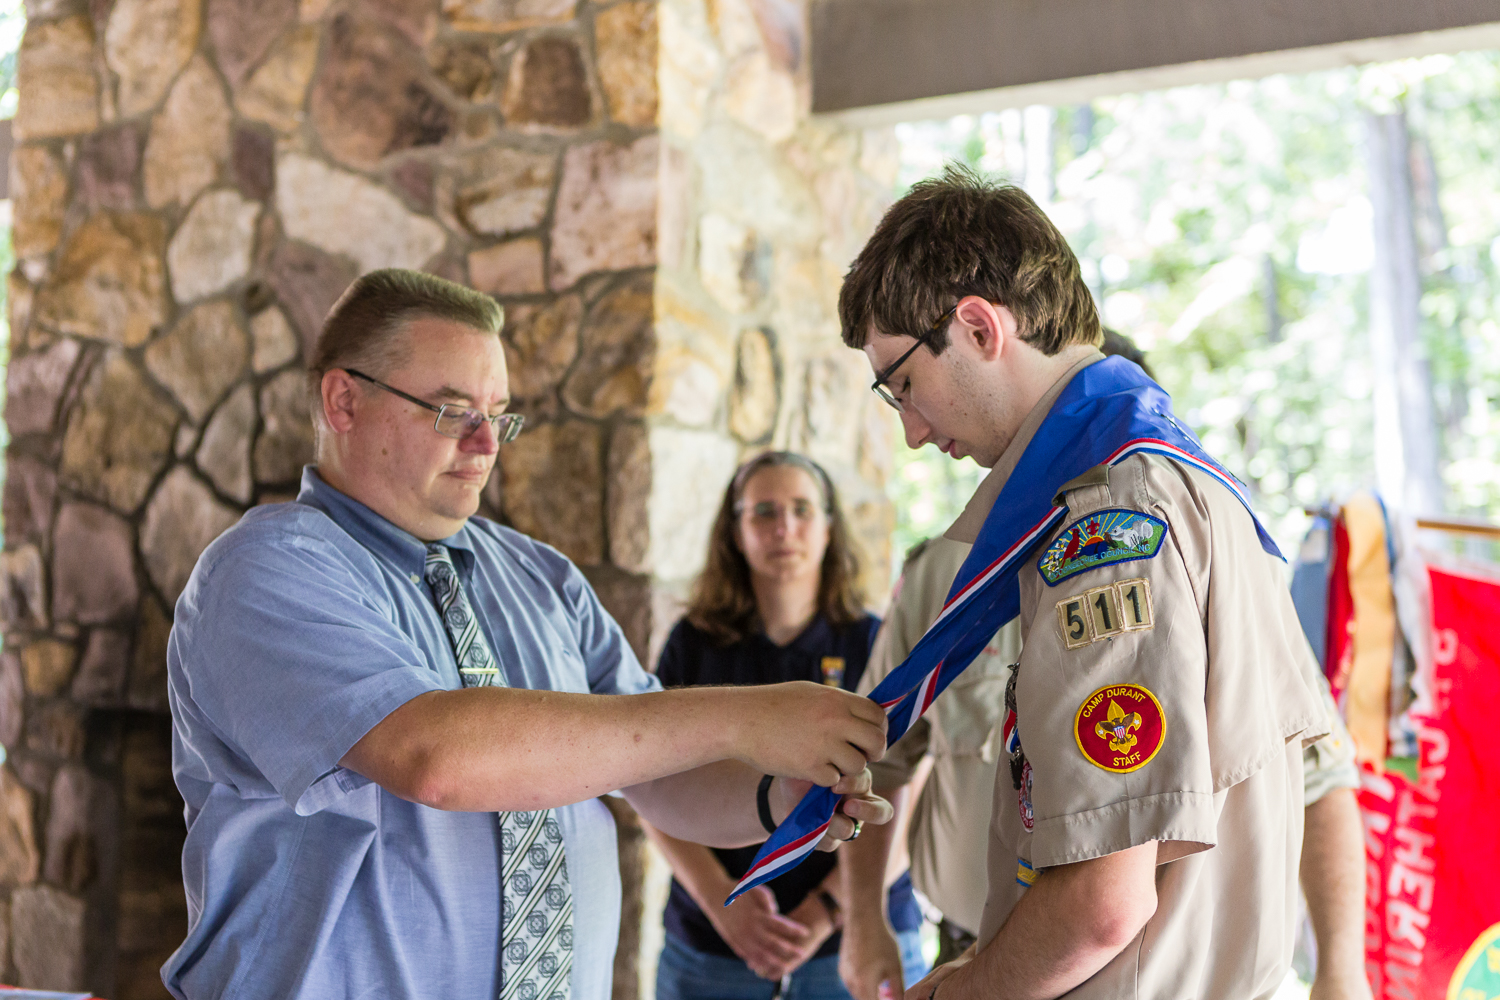 eagle-scout-ceremony-12.jpg